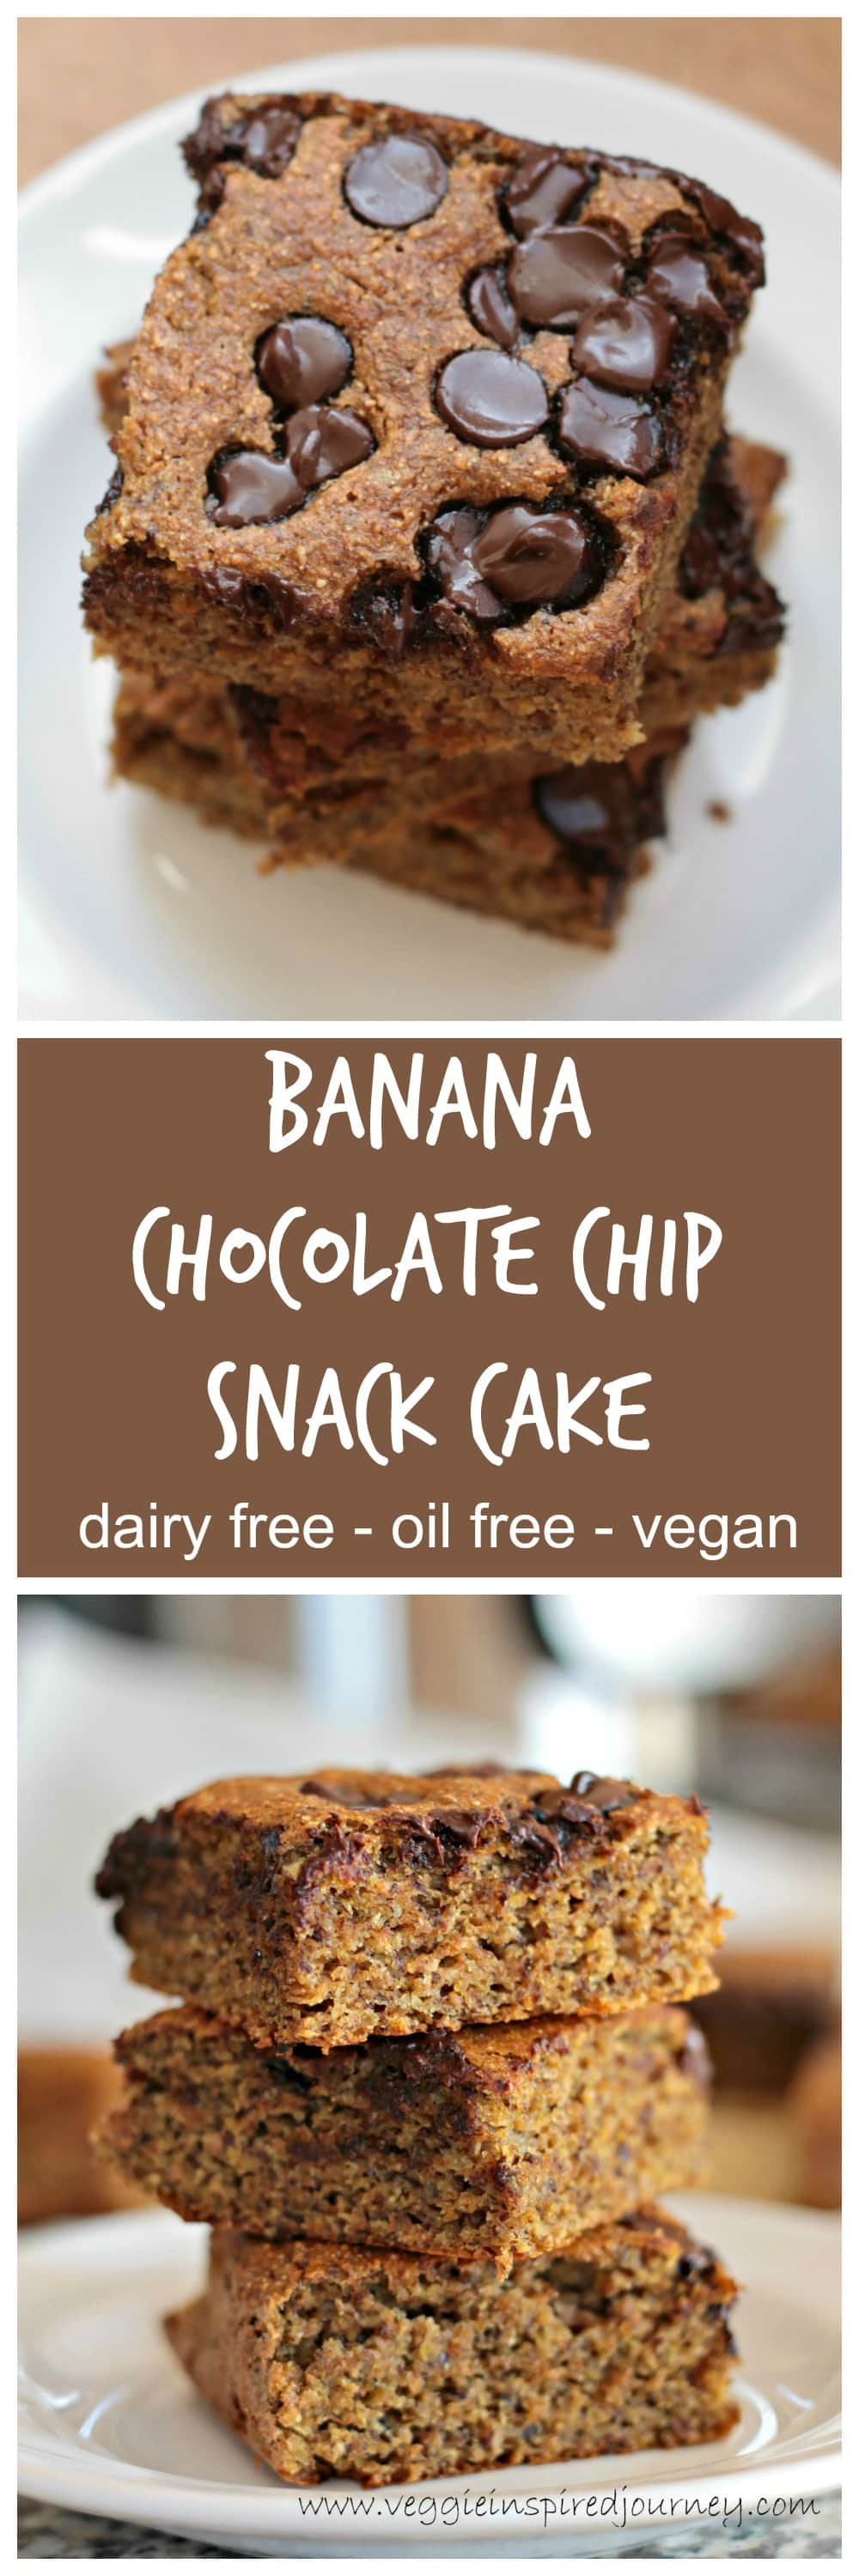 Banana Chocolate Chip Snack Cake - A cross between a quick bread and a cake and full of chocolate chips! Made with healthy whole wheat flour, it's also dairy free, egg free, and vegan. It's a favorite among kids! #dairyfree #snack #cake #vegan #chocolatechips #wholewheat #dessert